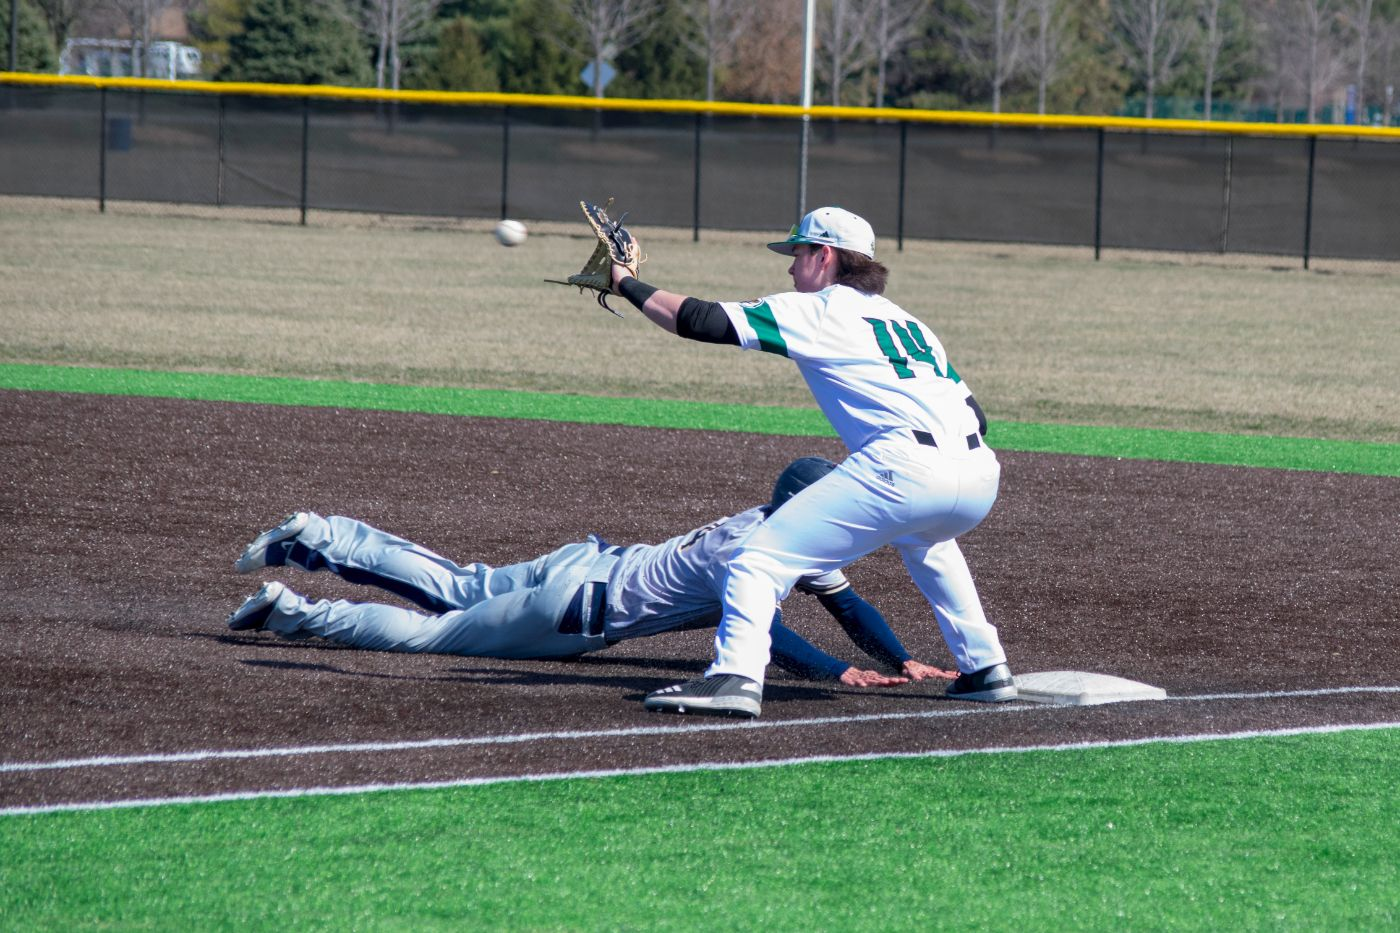 Bemidji State falls after early lead to Illinois-Springfield in series finale